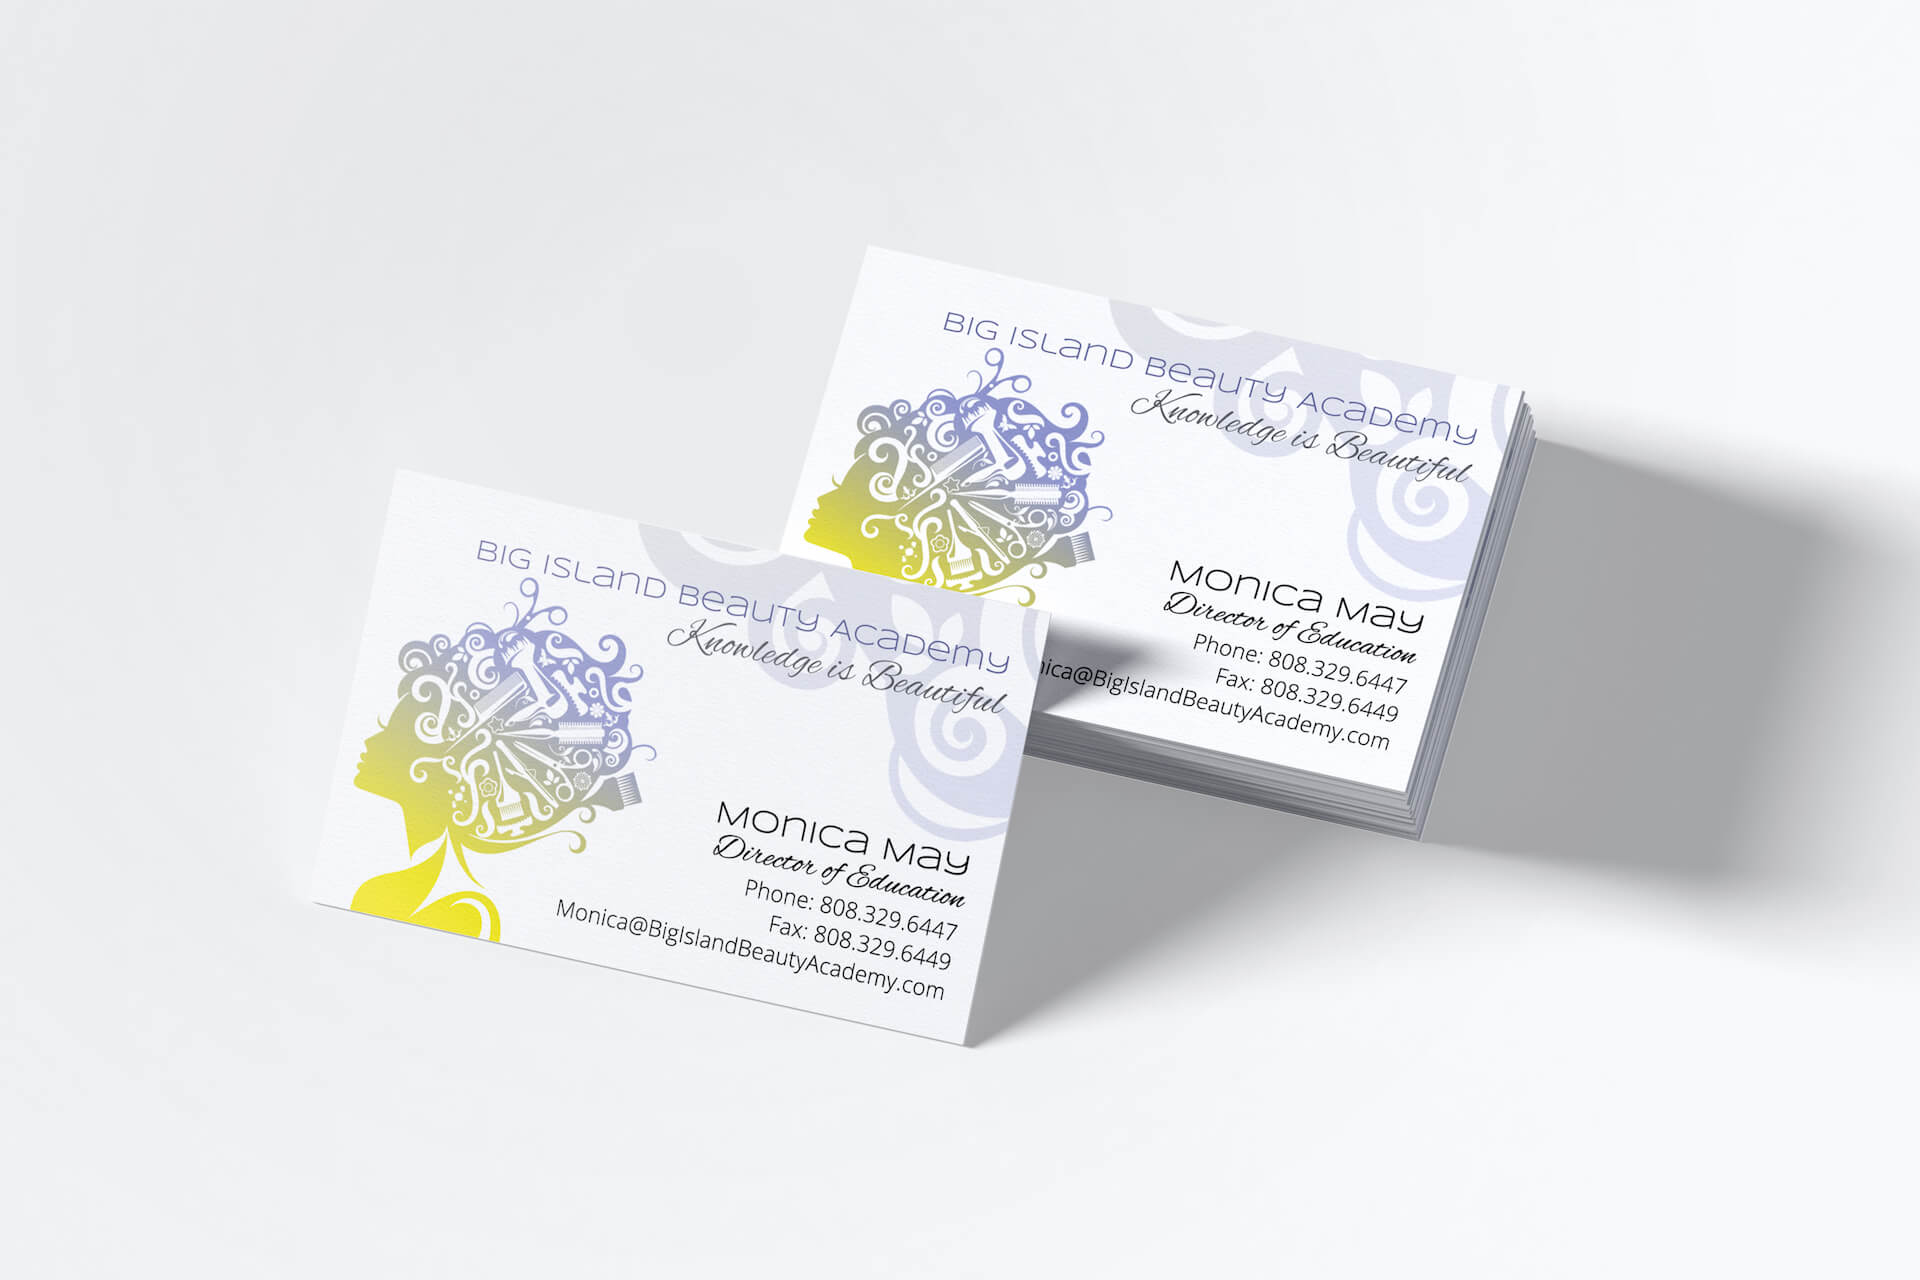 Big Island Beauty Academy — Business Cards